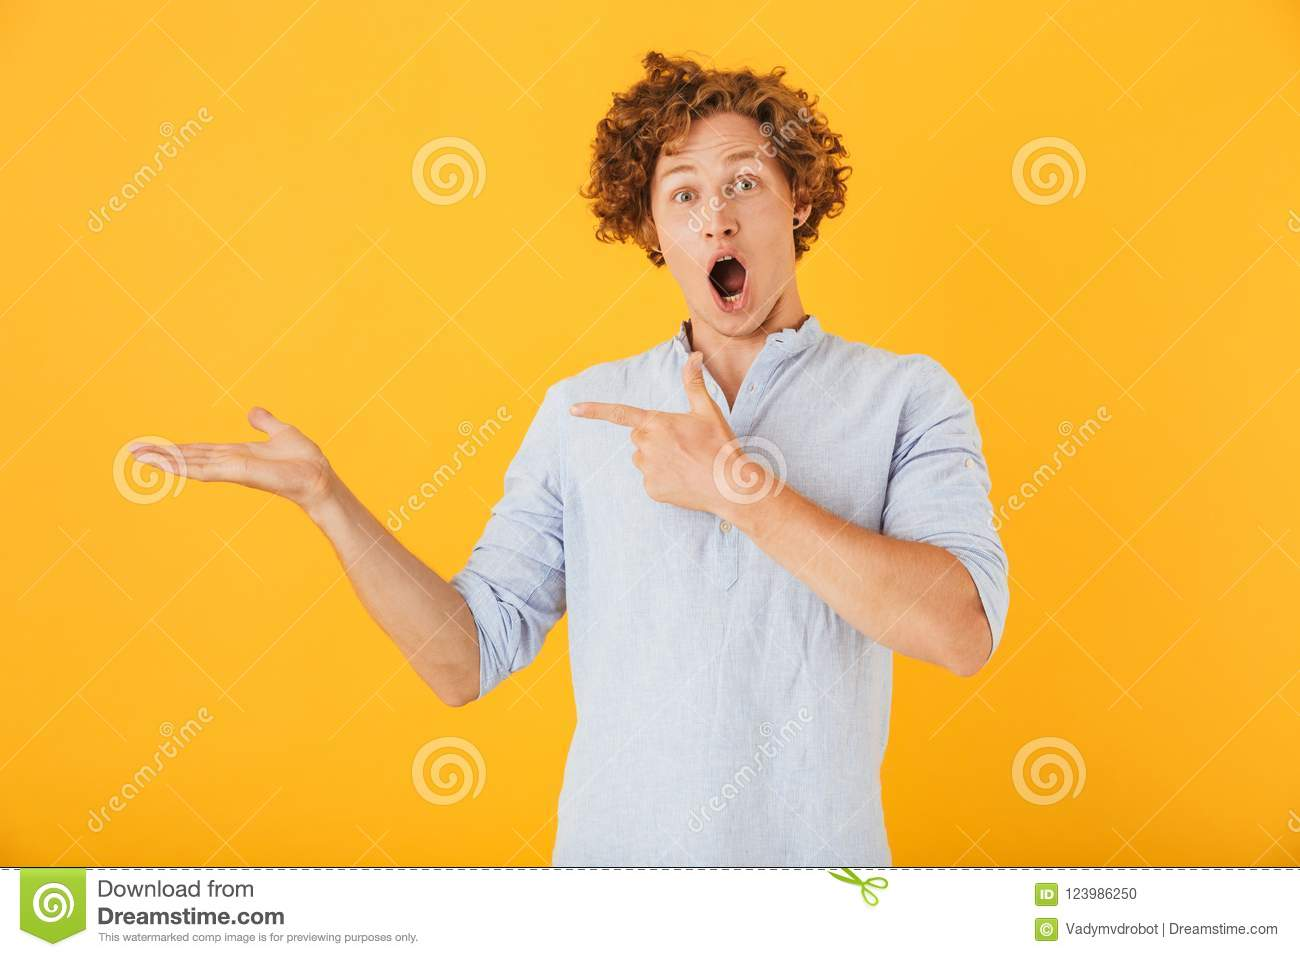 Photo of shocked european man 20s shouting and holding copyspace at palm, isolated over yellow background